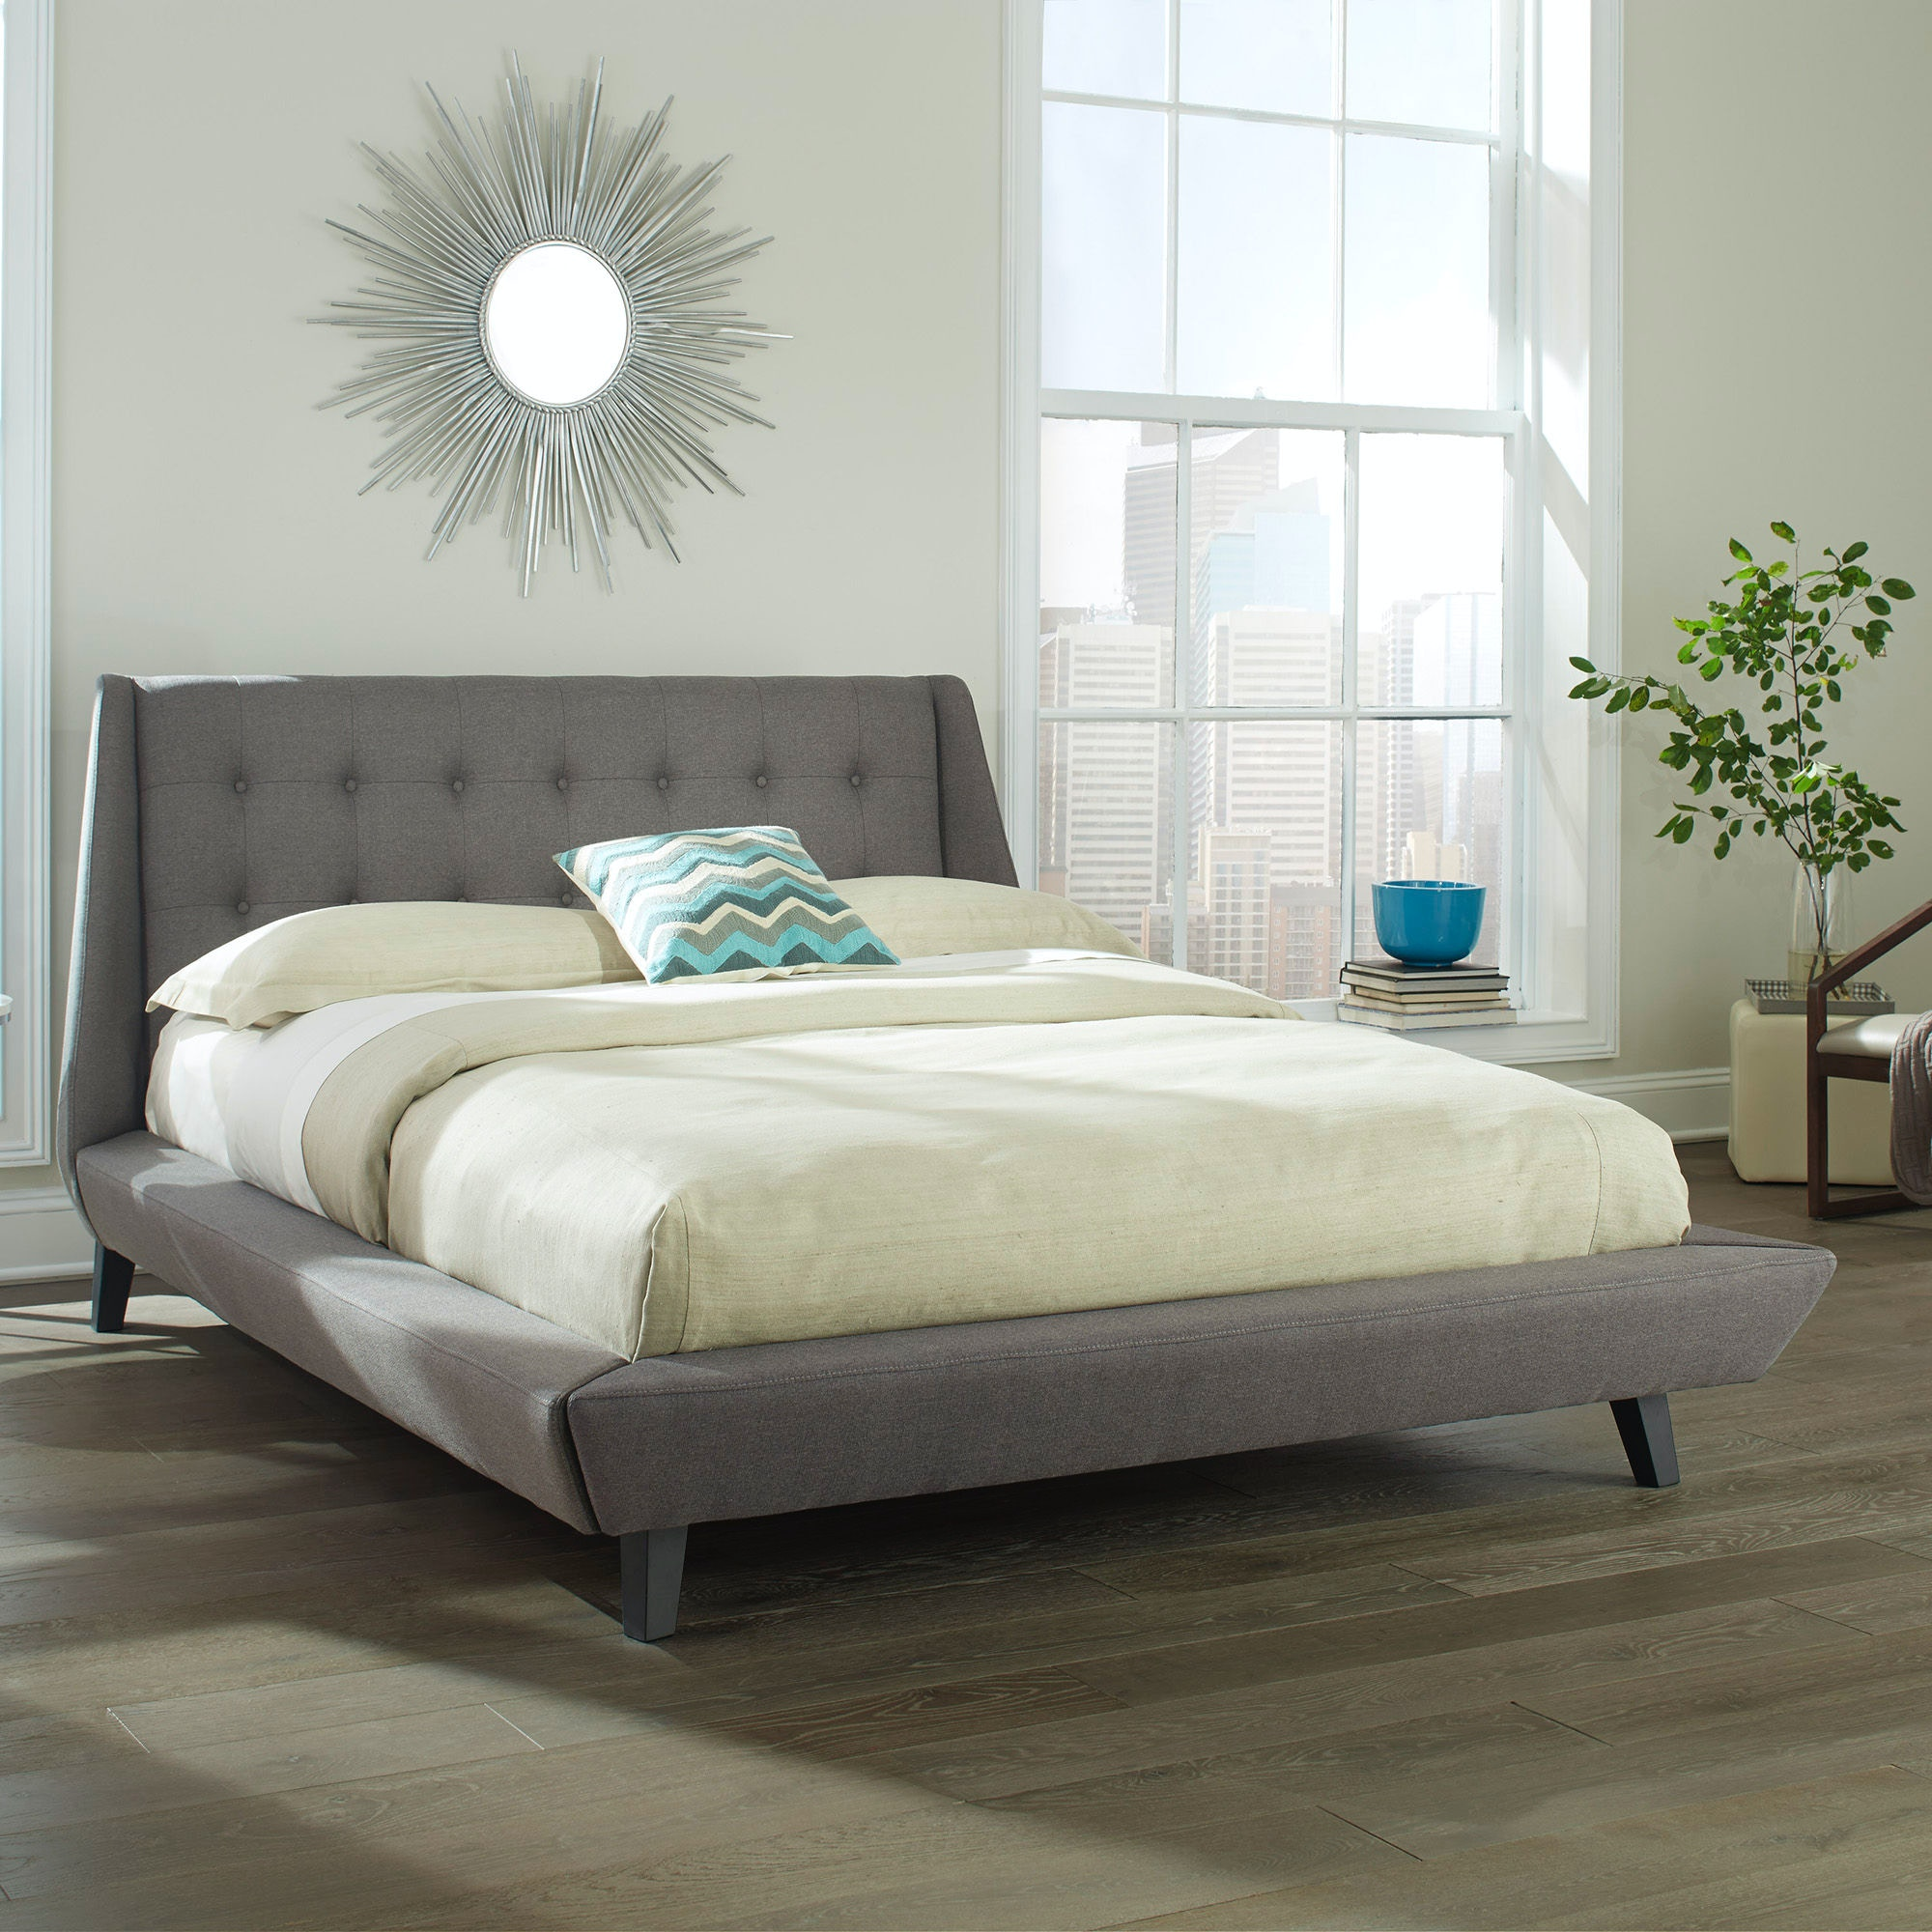 Fashion Bed Group Prelude Complete Platform Bed With Button Tuft Headboard  And Upholstered Exterior, ...